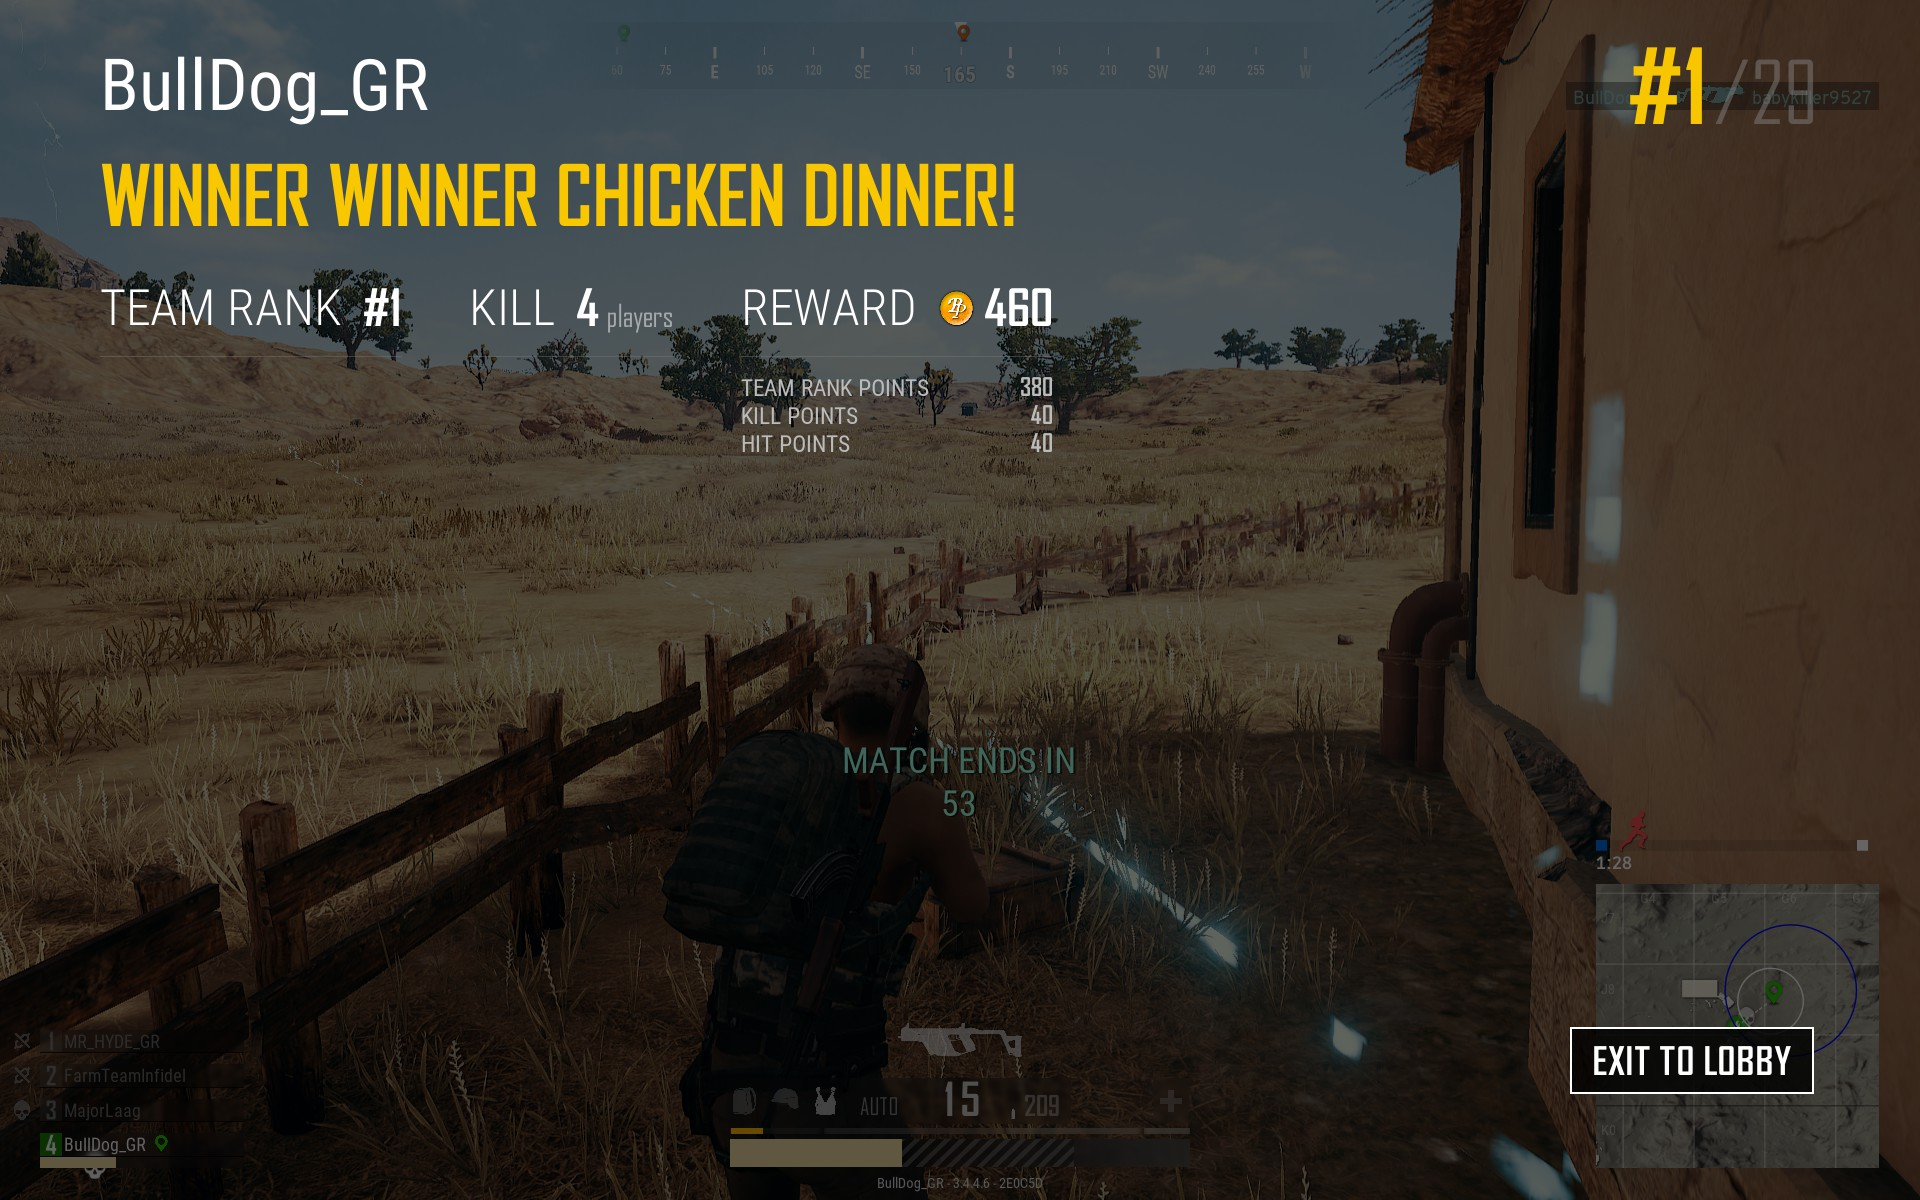 Lets see your Winner Winner Chicken Dinner screenshots! - Page 3 682A175CC3570F6D7A7F9B2EBF5739A2A22C70AB